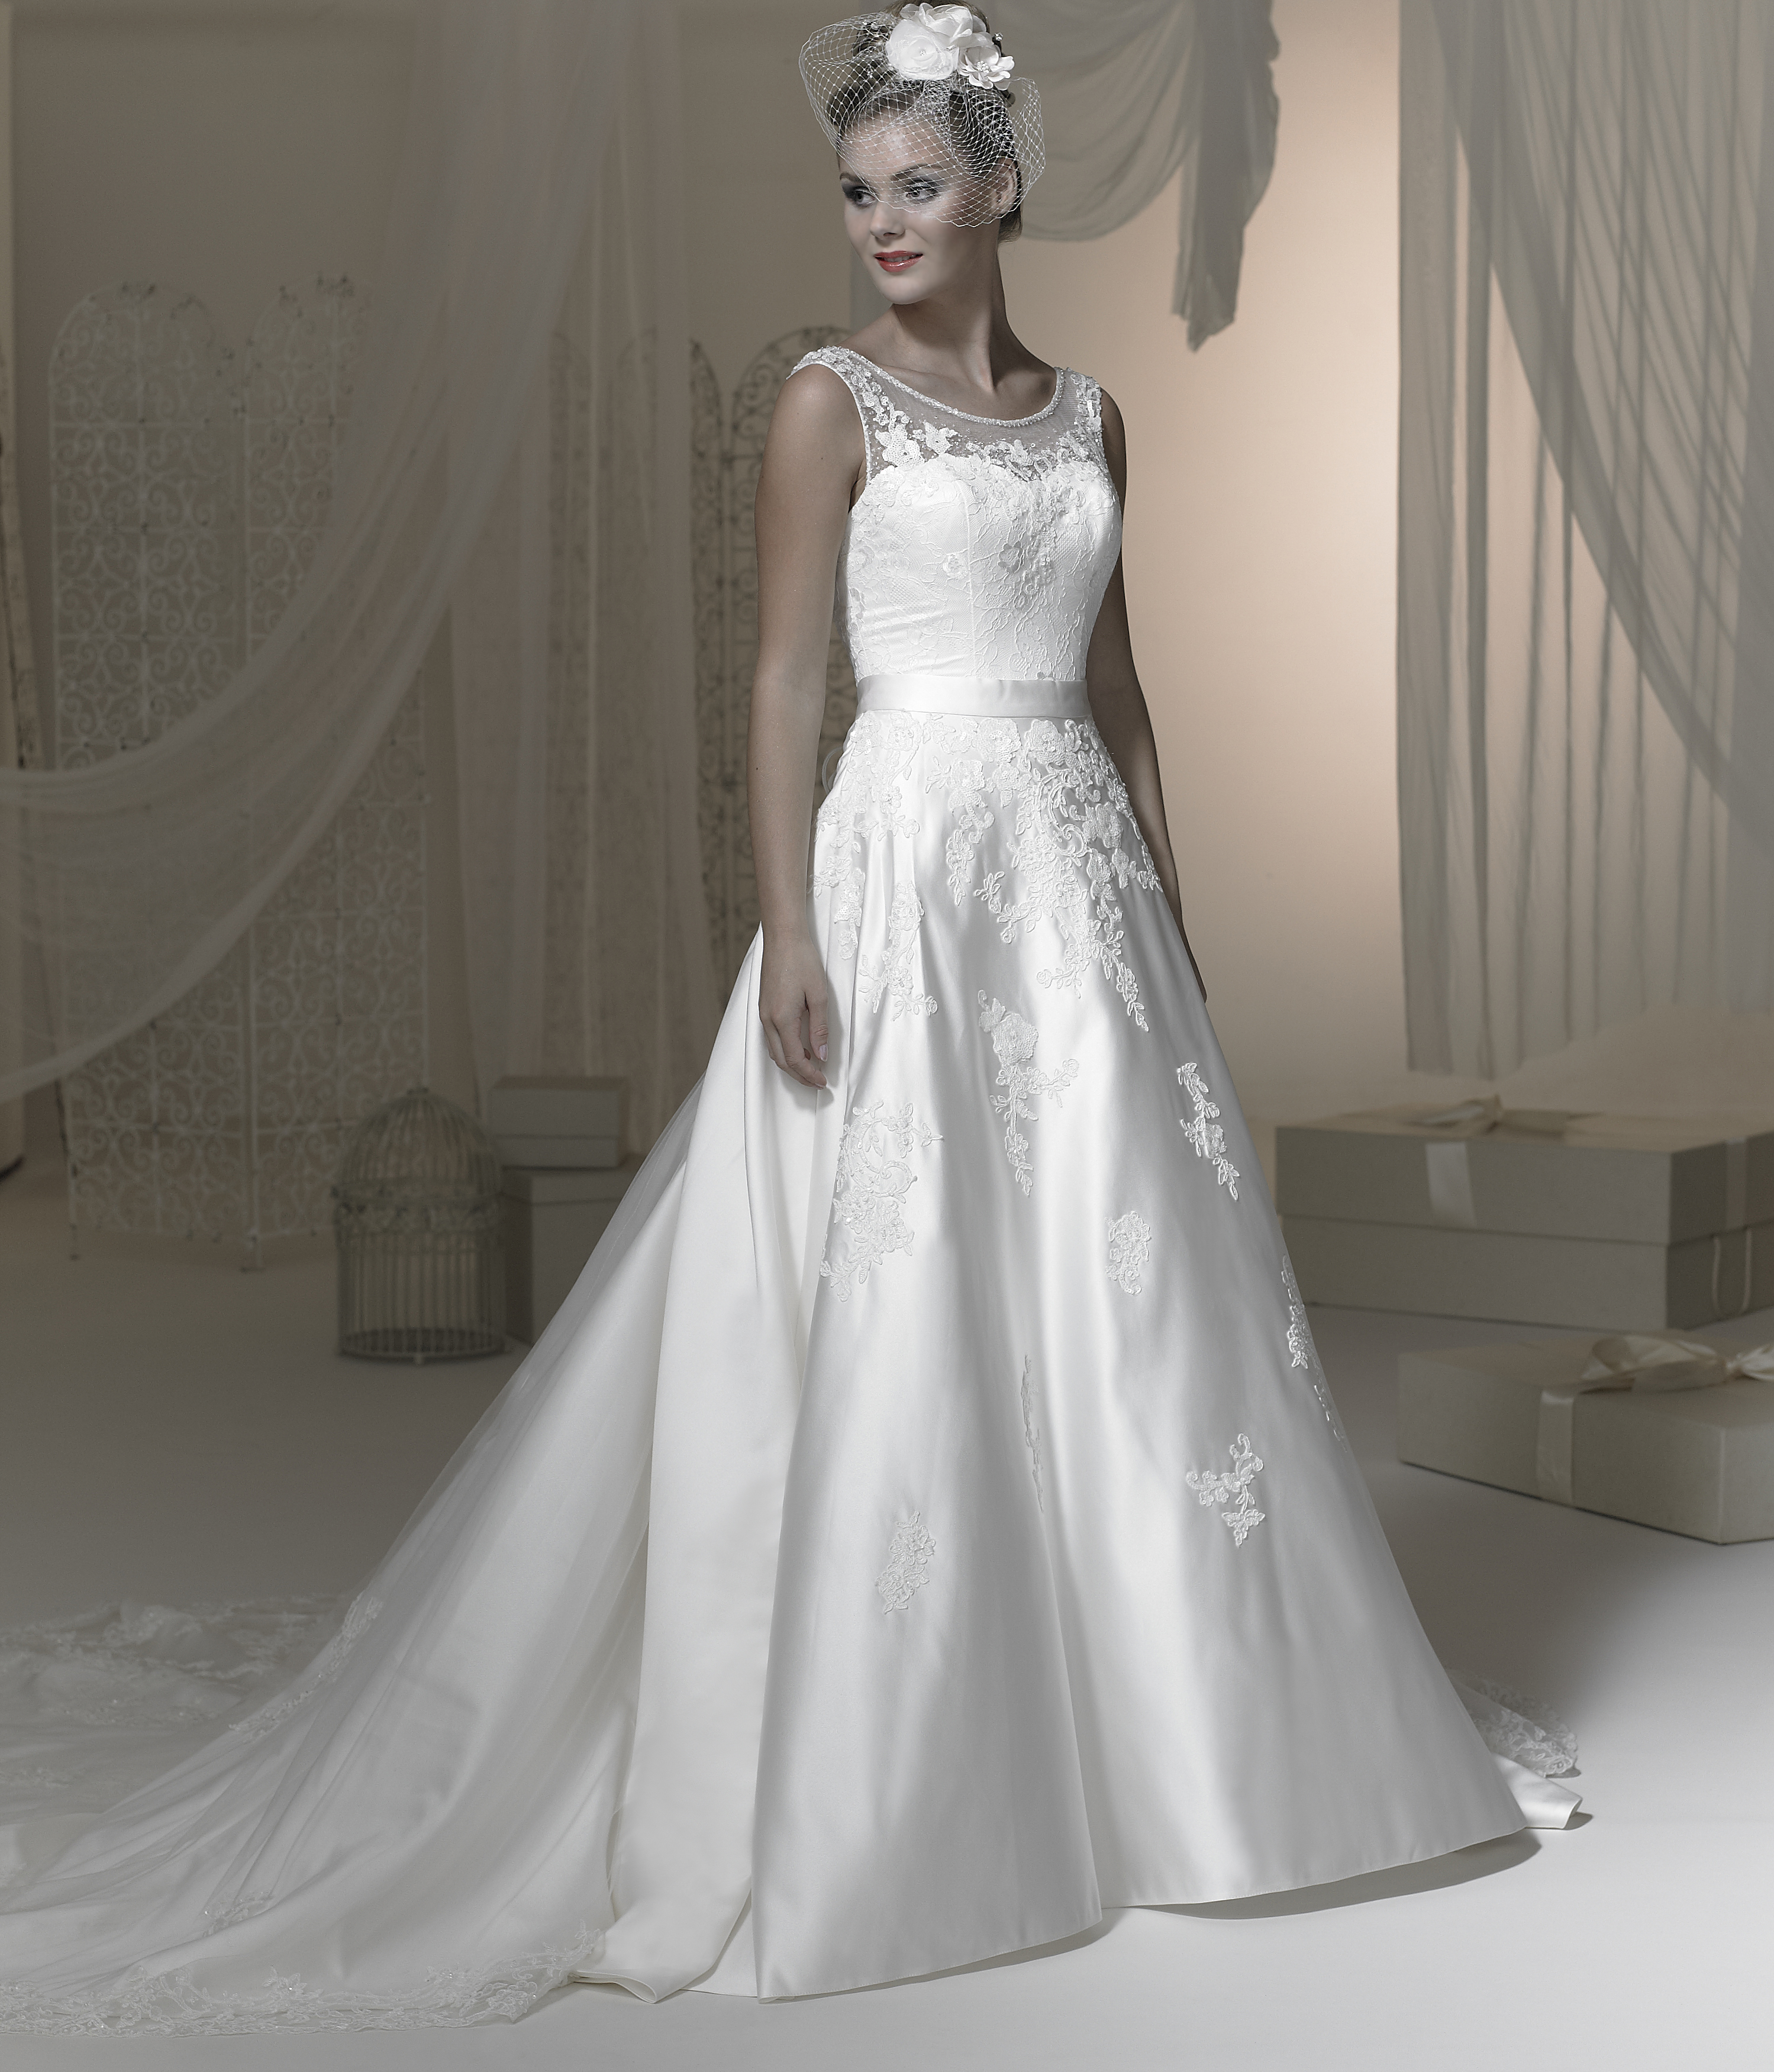 Wedding Gowns Outlet: Wedding Dresses In Blackpool, Wedding Dresses In Poulton